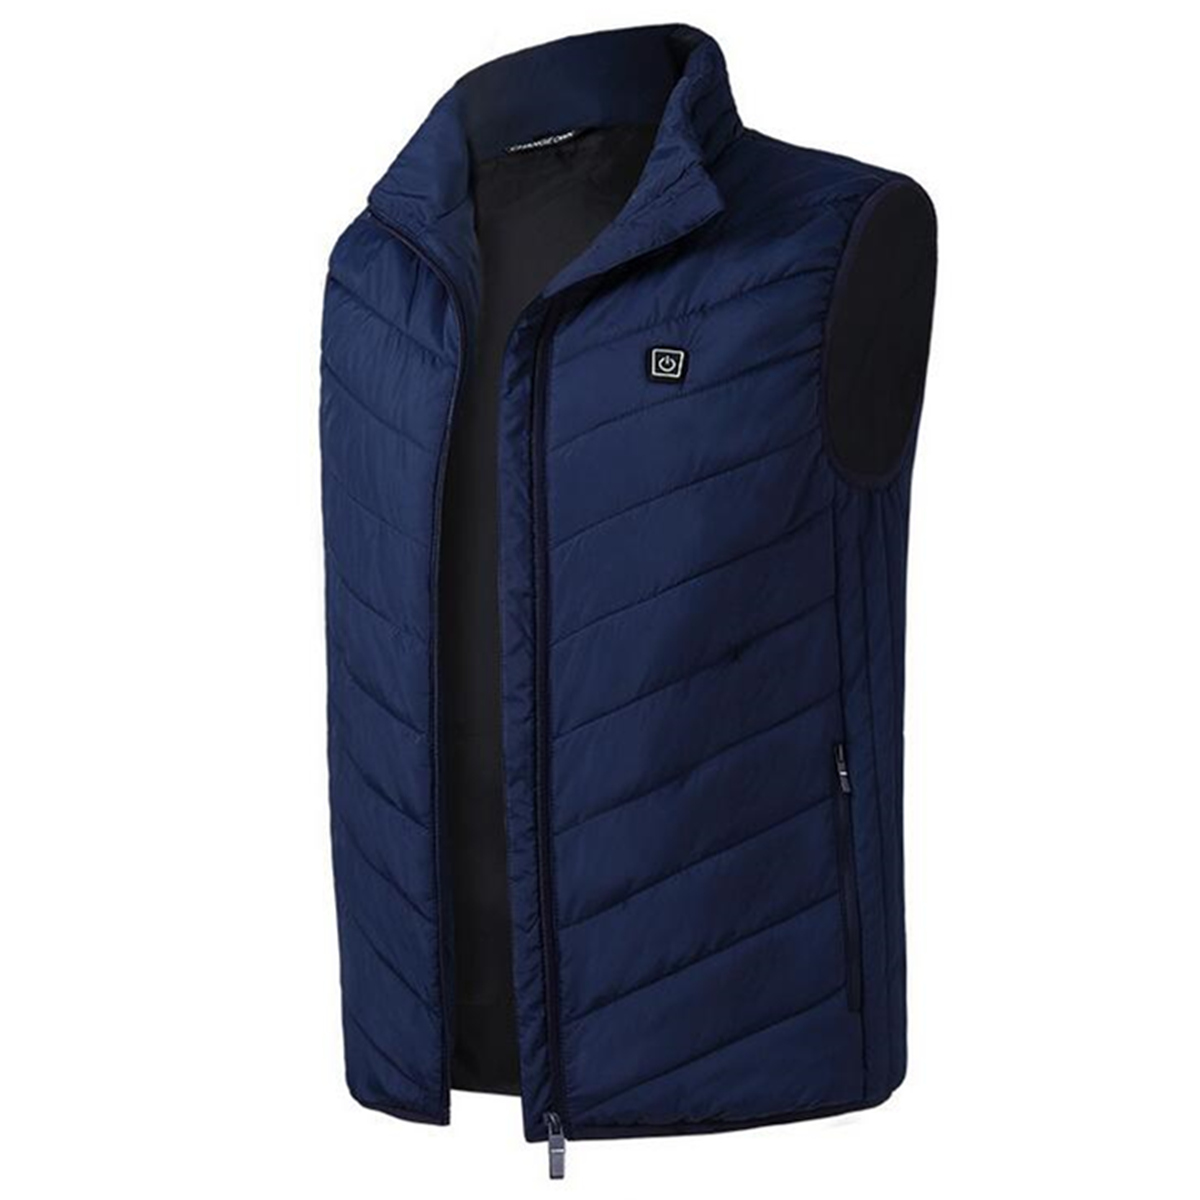 Electric Vest Heated Jacket USB Thermal Warm Cloth Winter Body Warmer